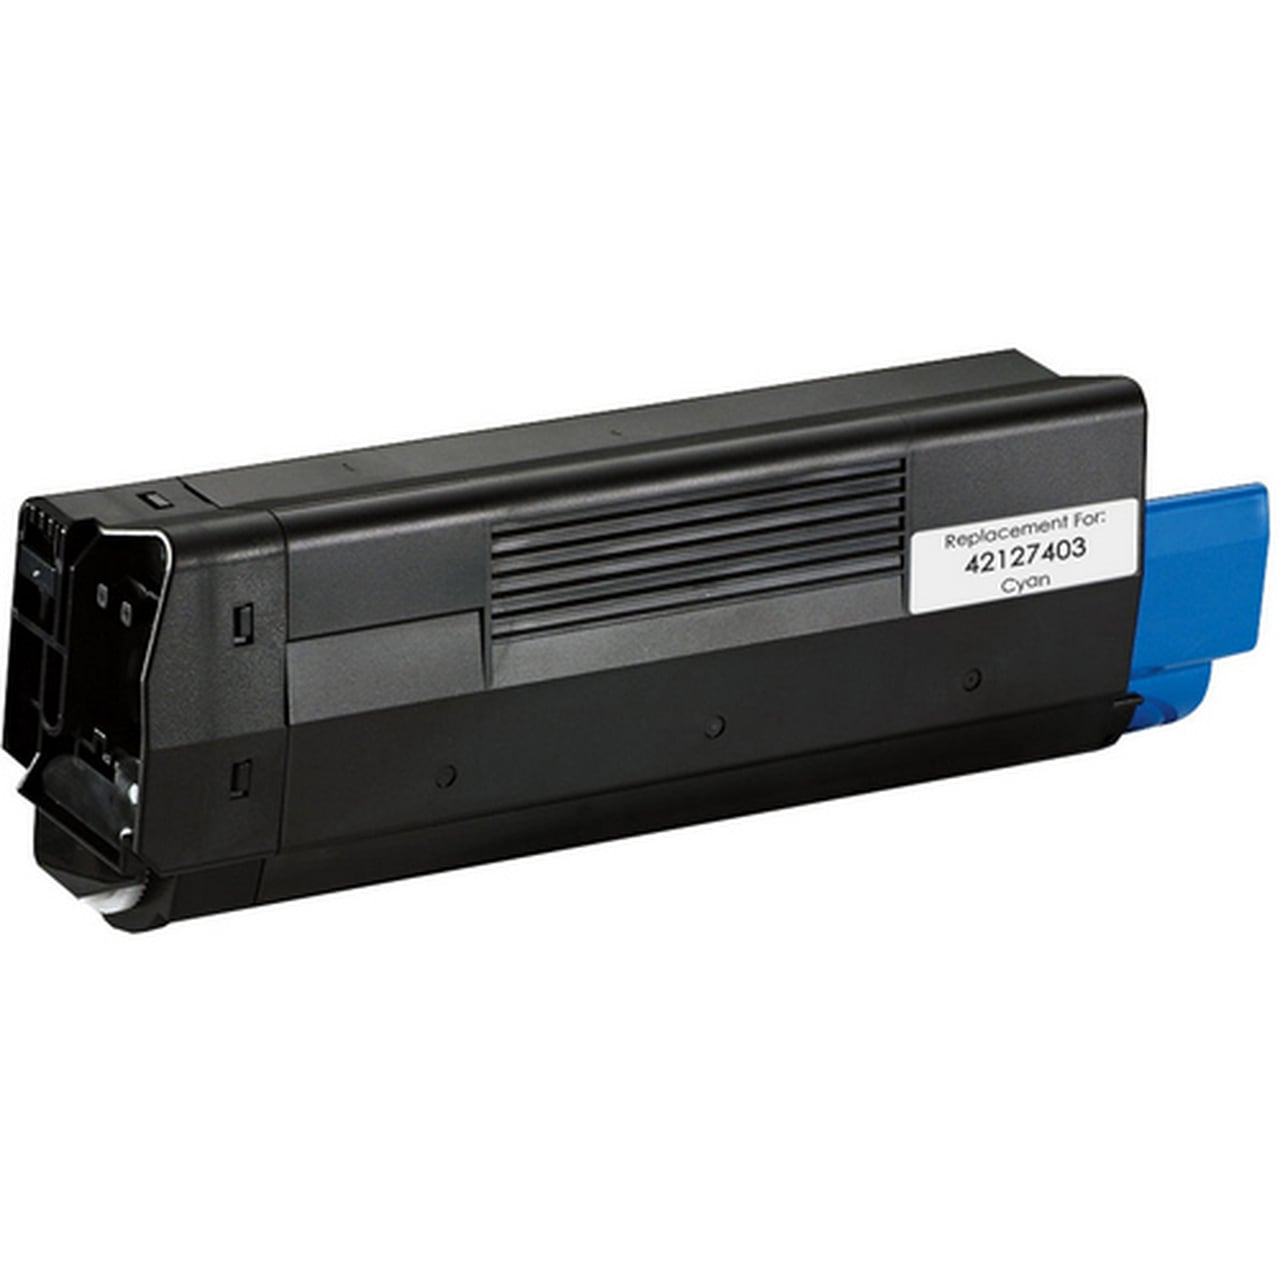 42127403 Toner Cartridge - Okidata Remanufactured (Cyan)